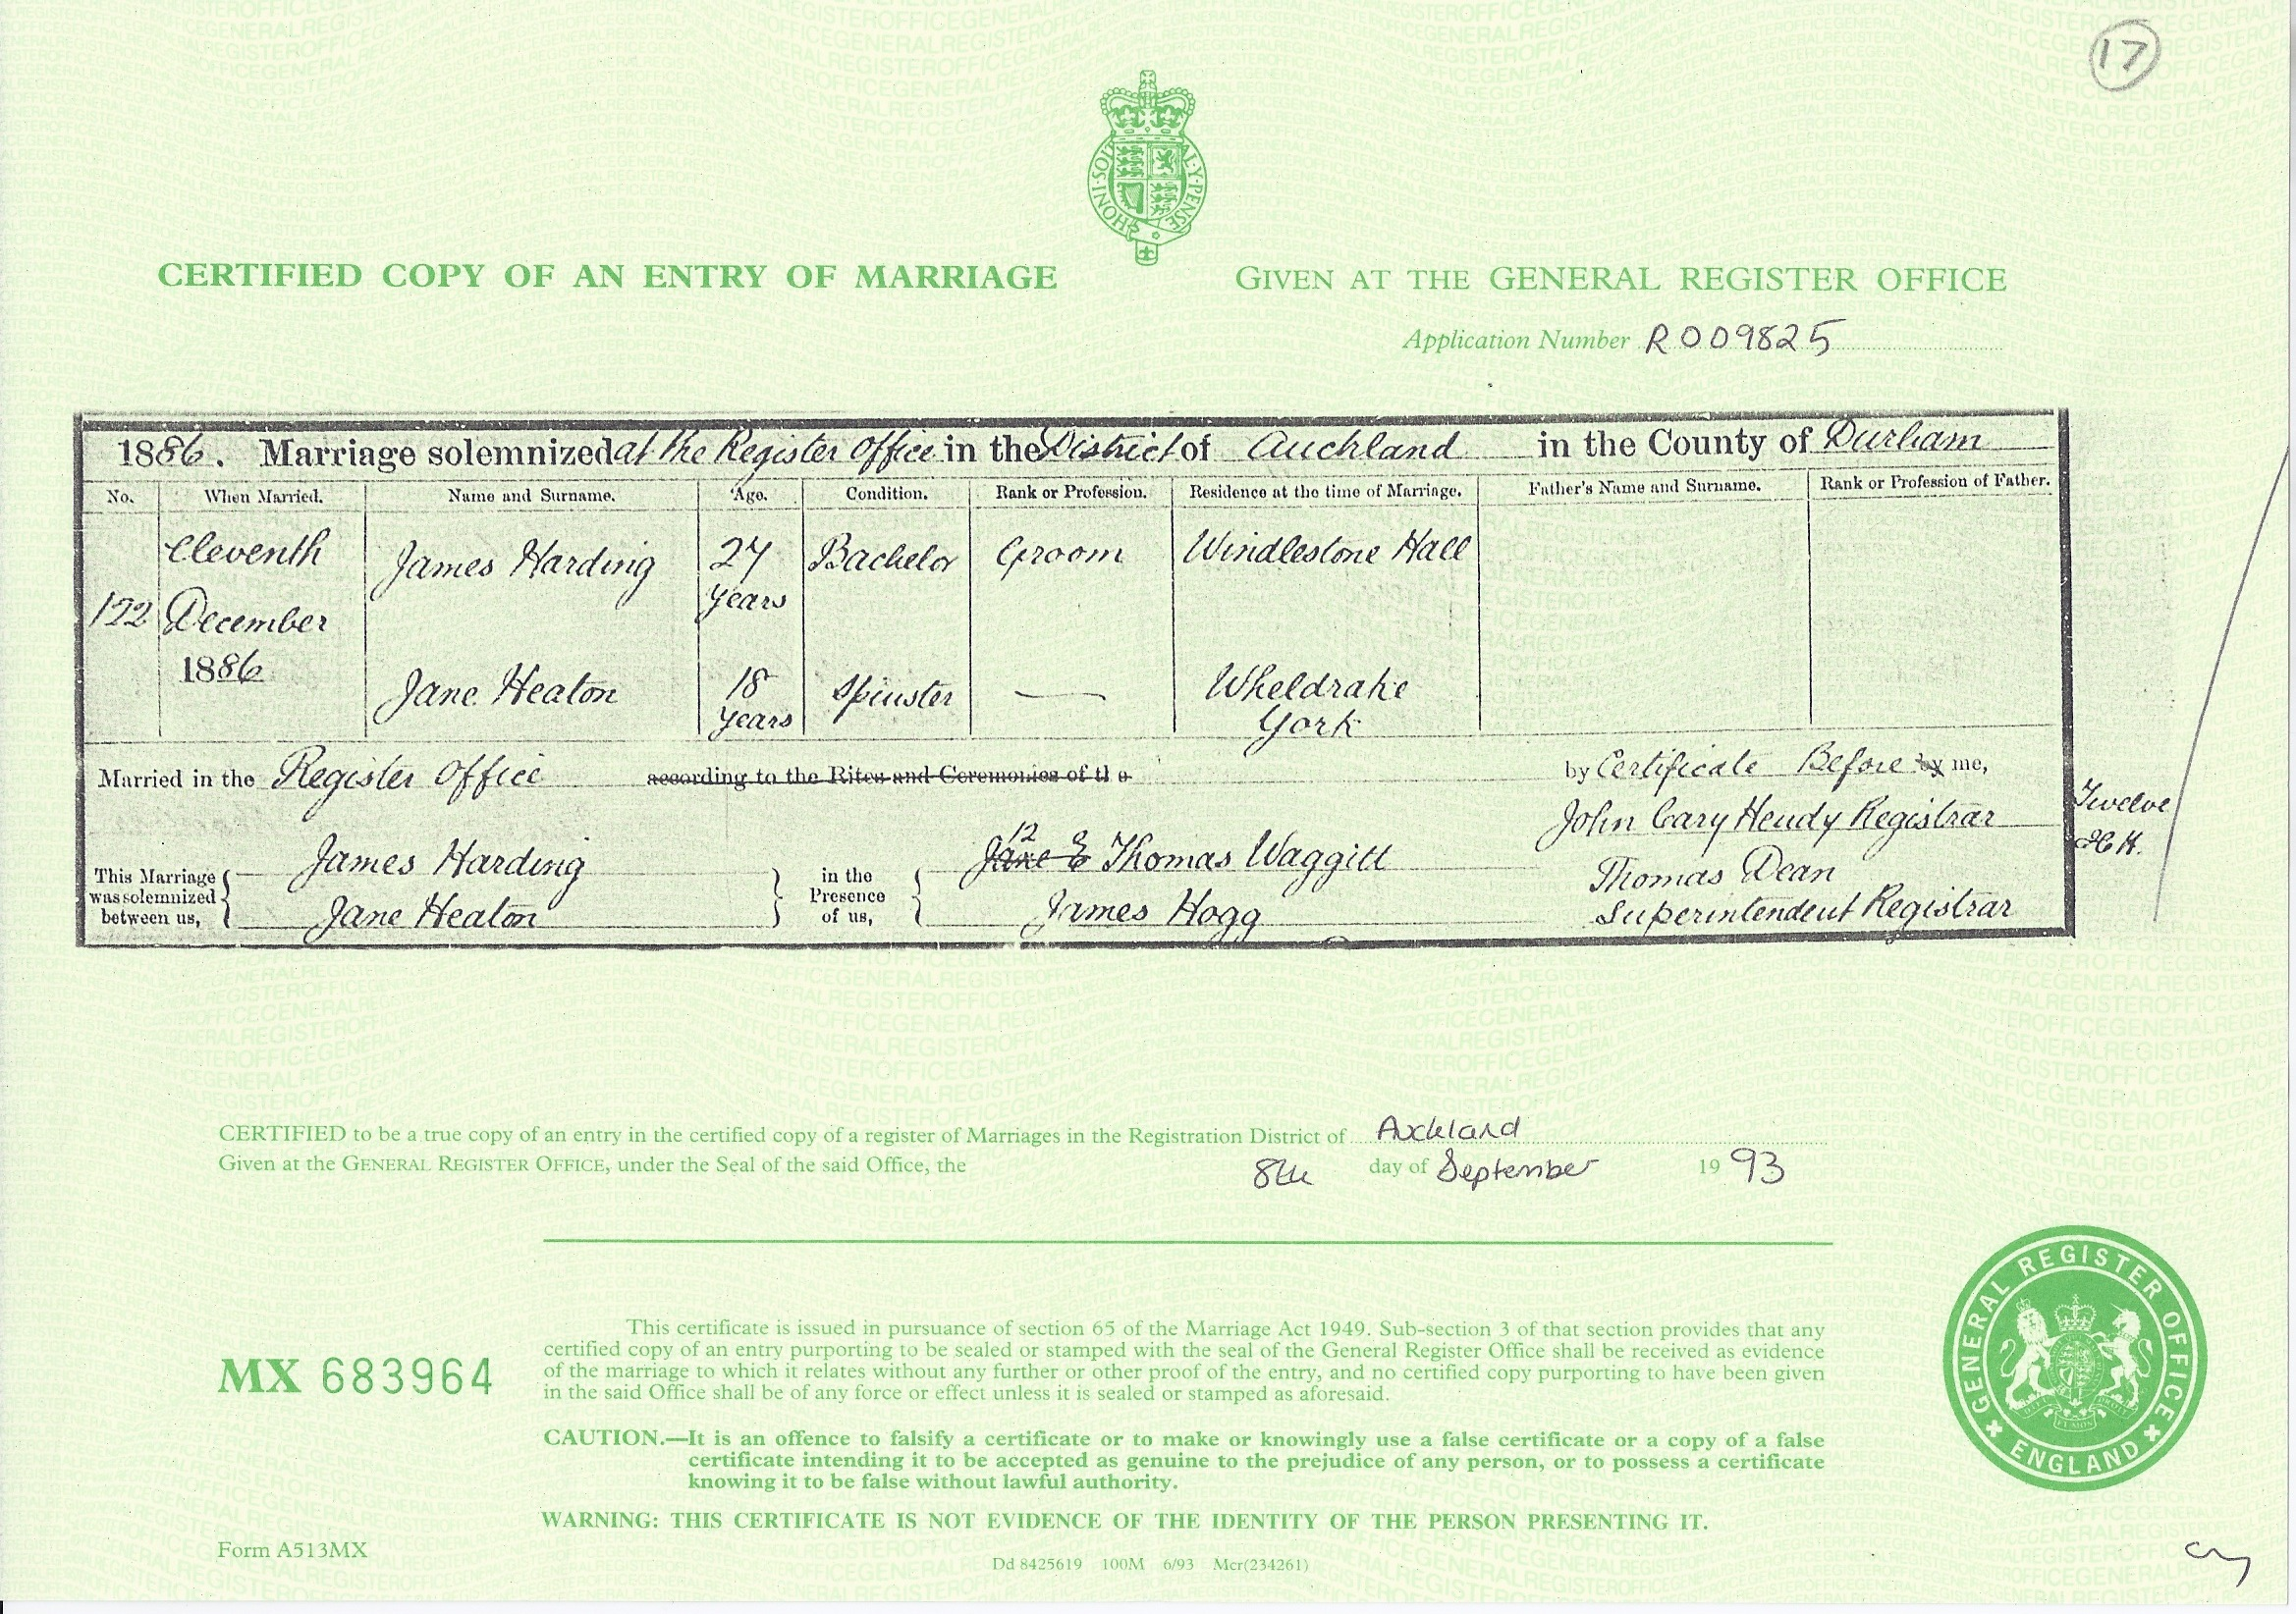 Marriage Certificate for James Harding and Jane Heaton